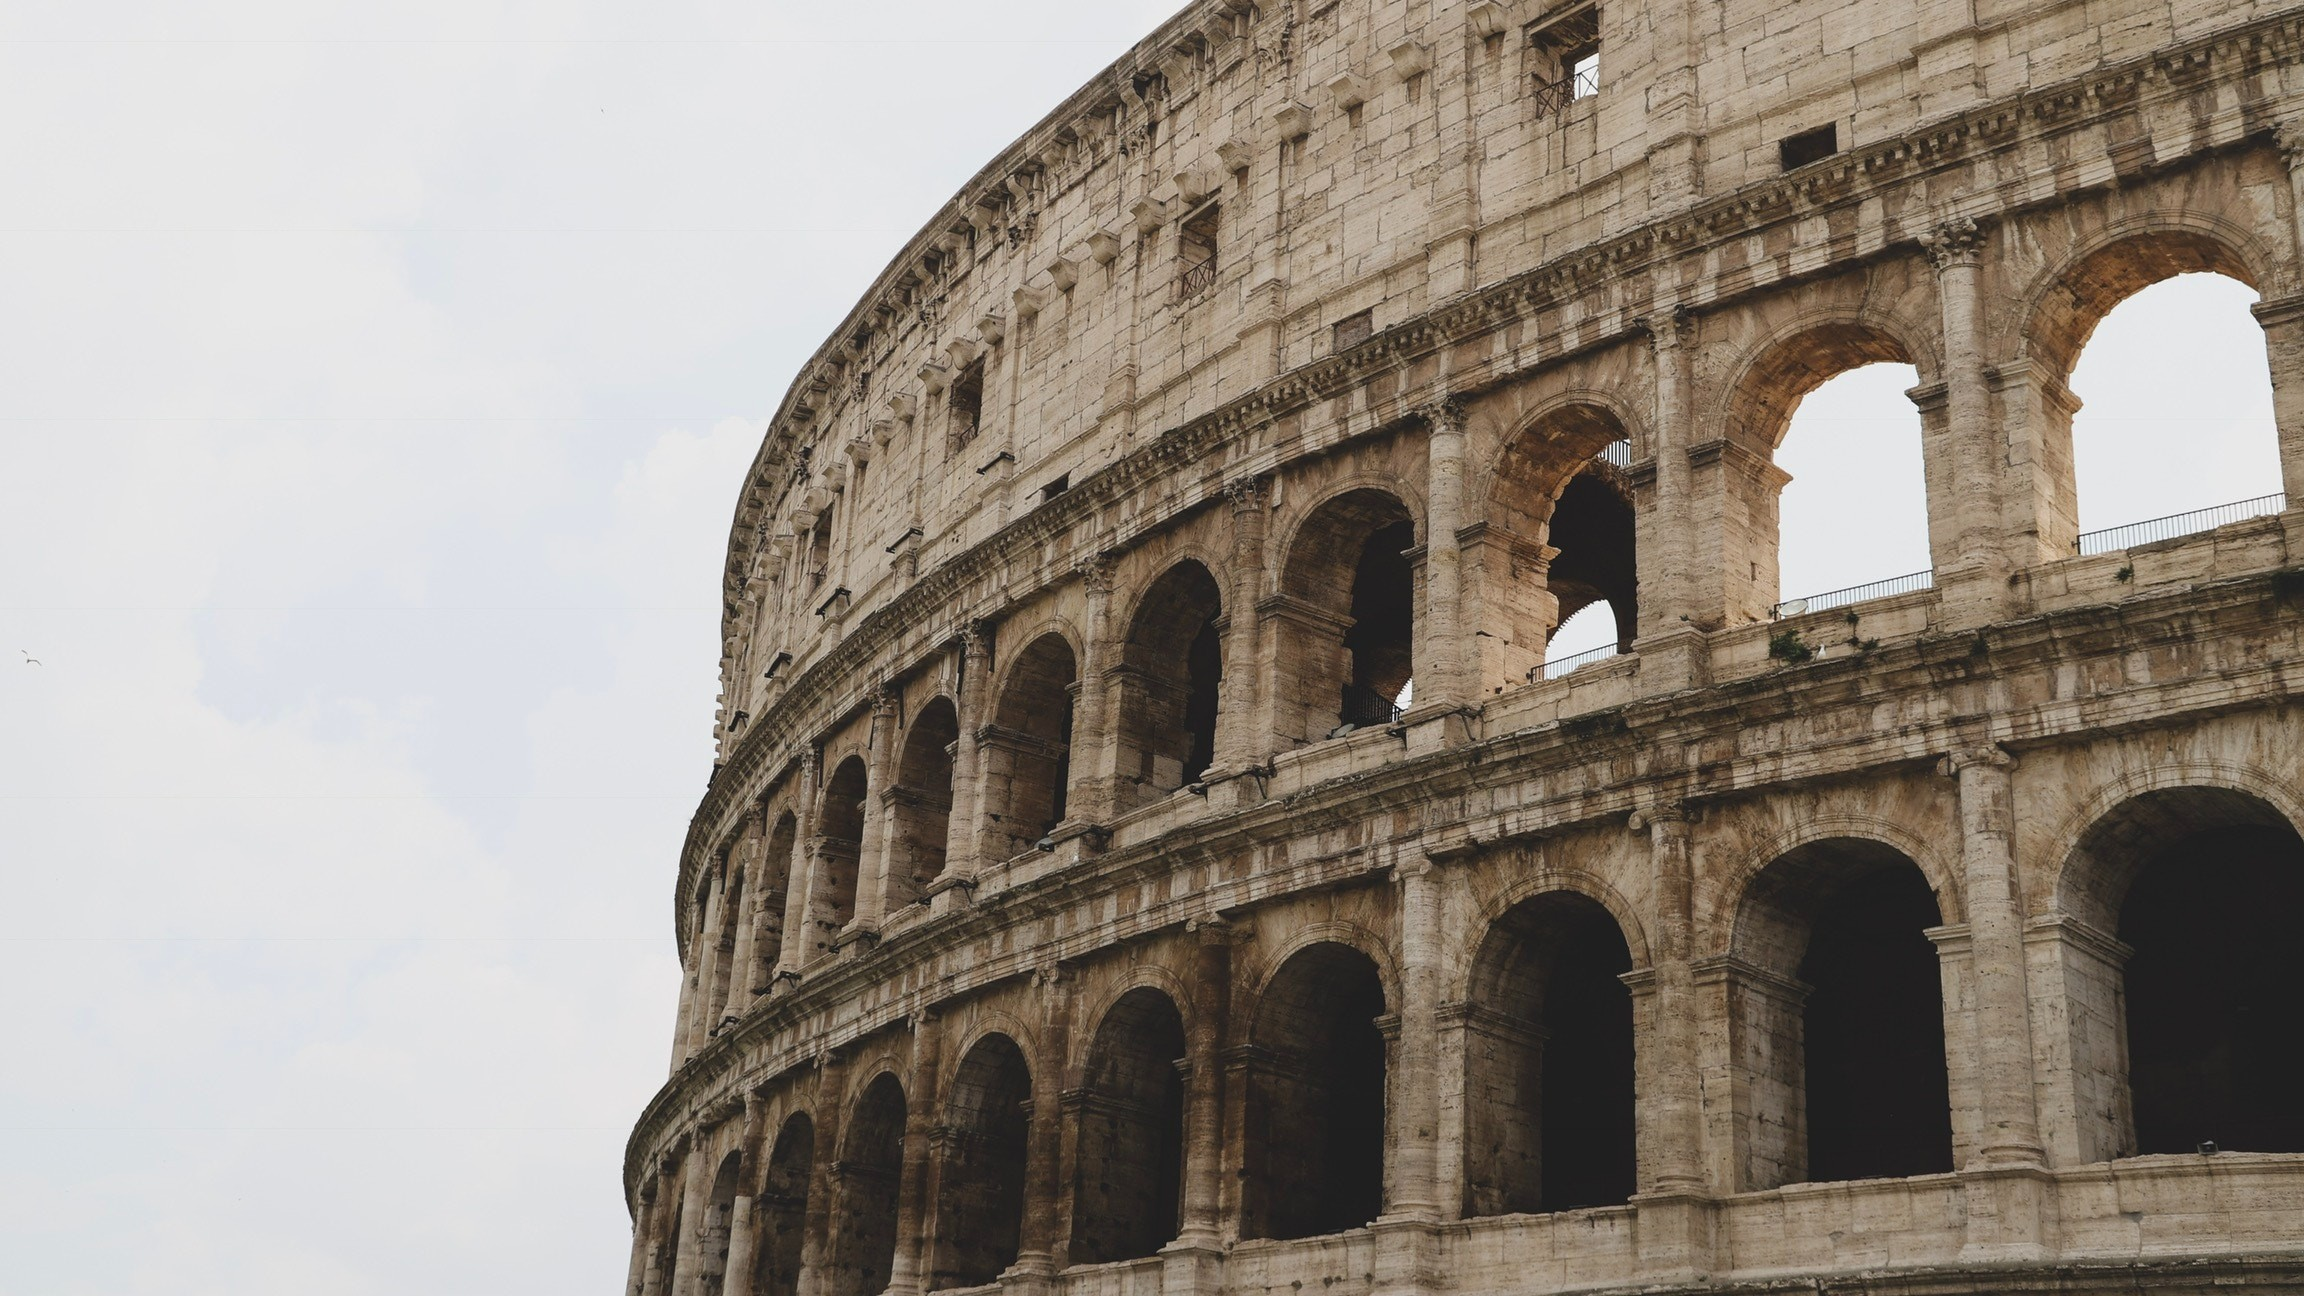 Roman amphitheaters act like seismic invisibility cloaks